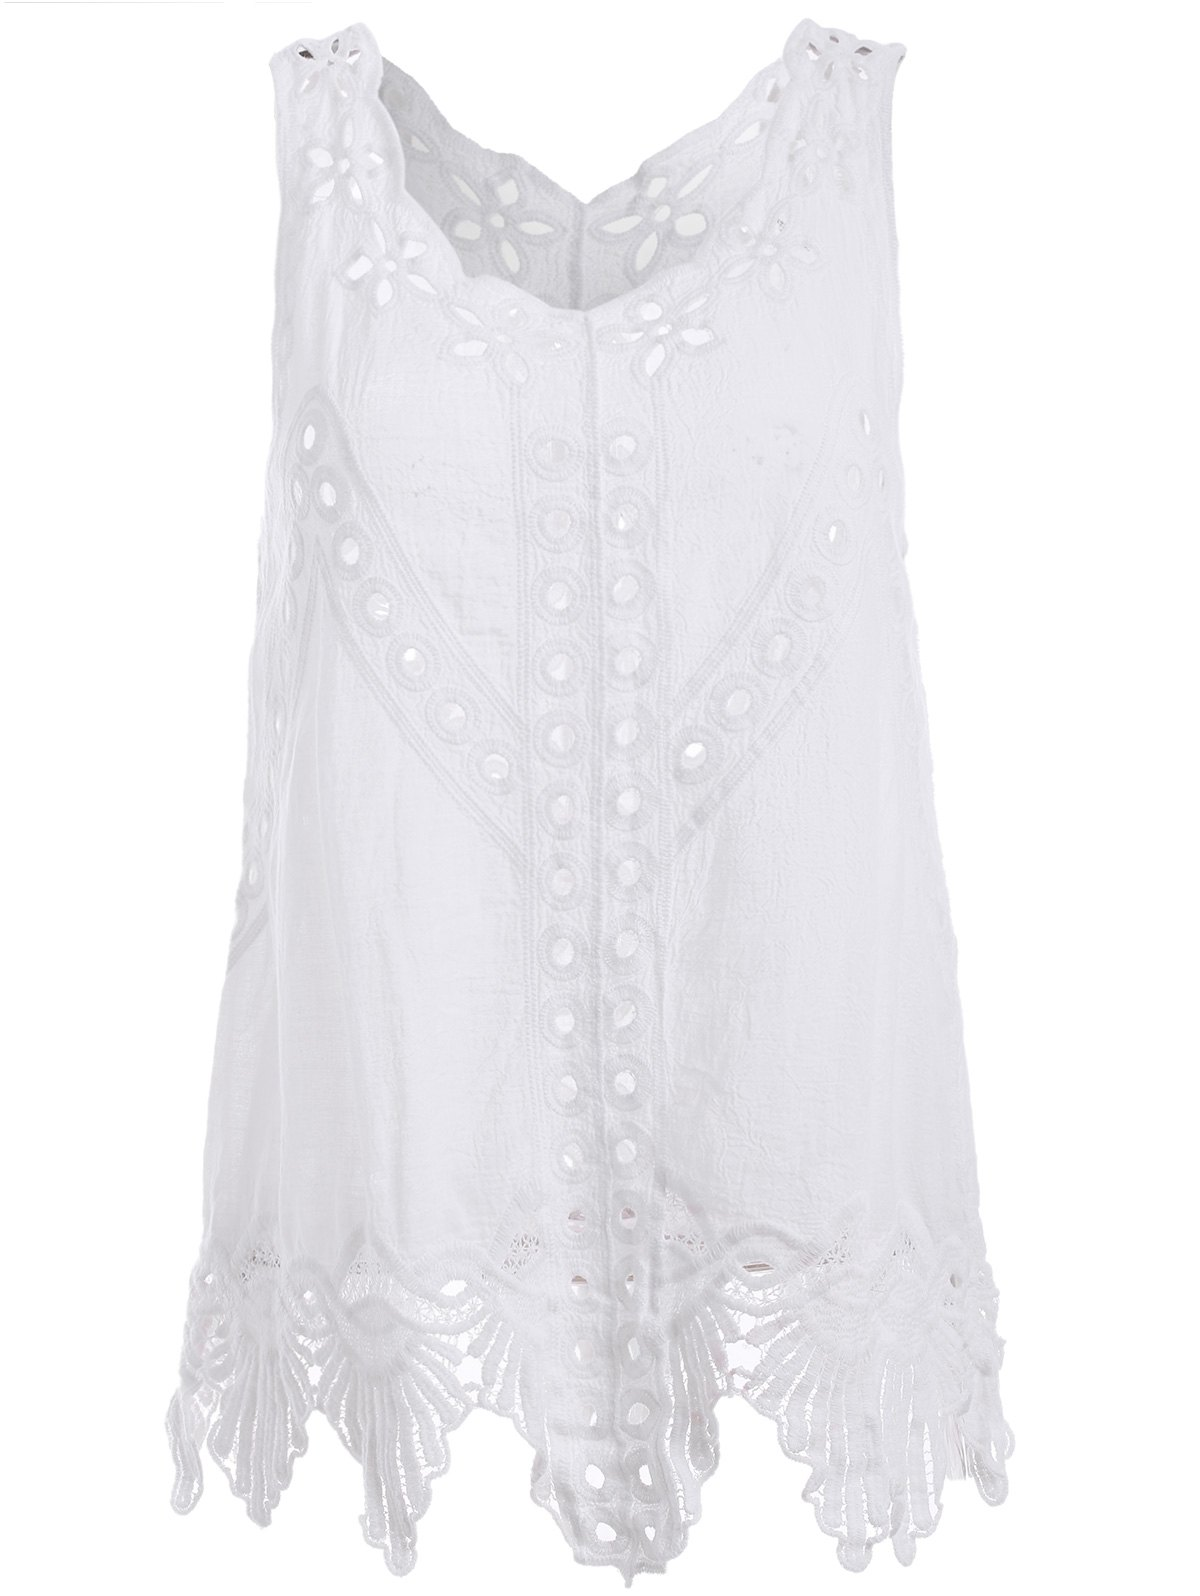 Sleeveless Floral Cut Out Crochet Hem Brief Women's Blouse - WHITE ONE SIZE(FIT SIZE XS TO M)